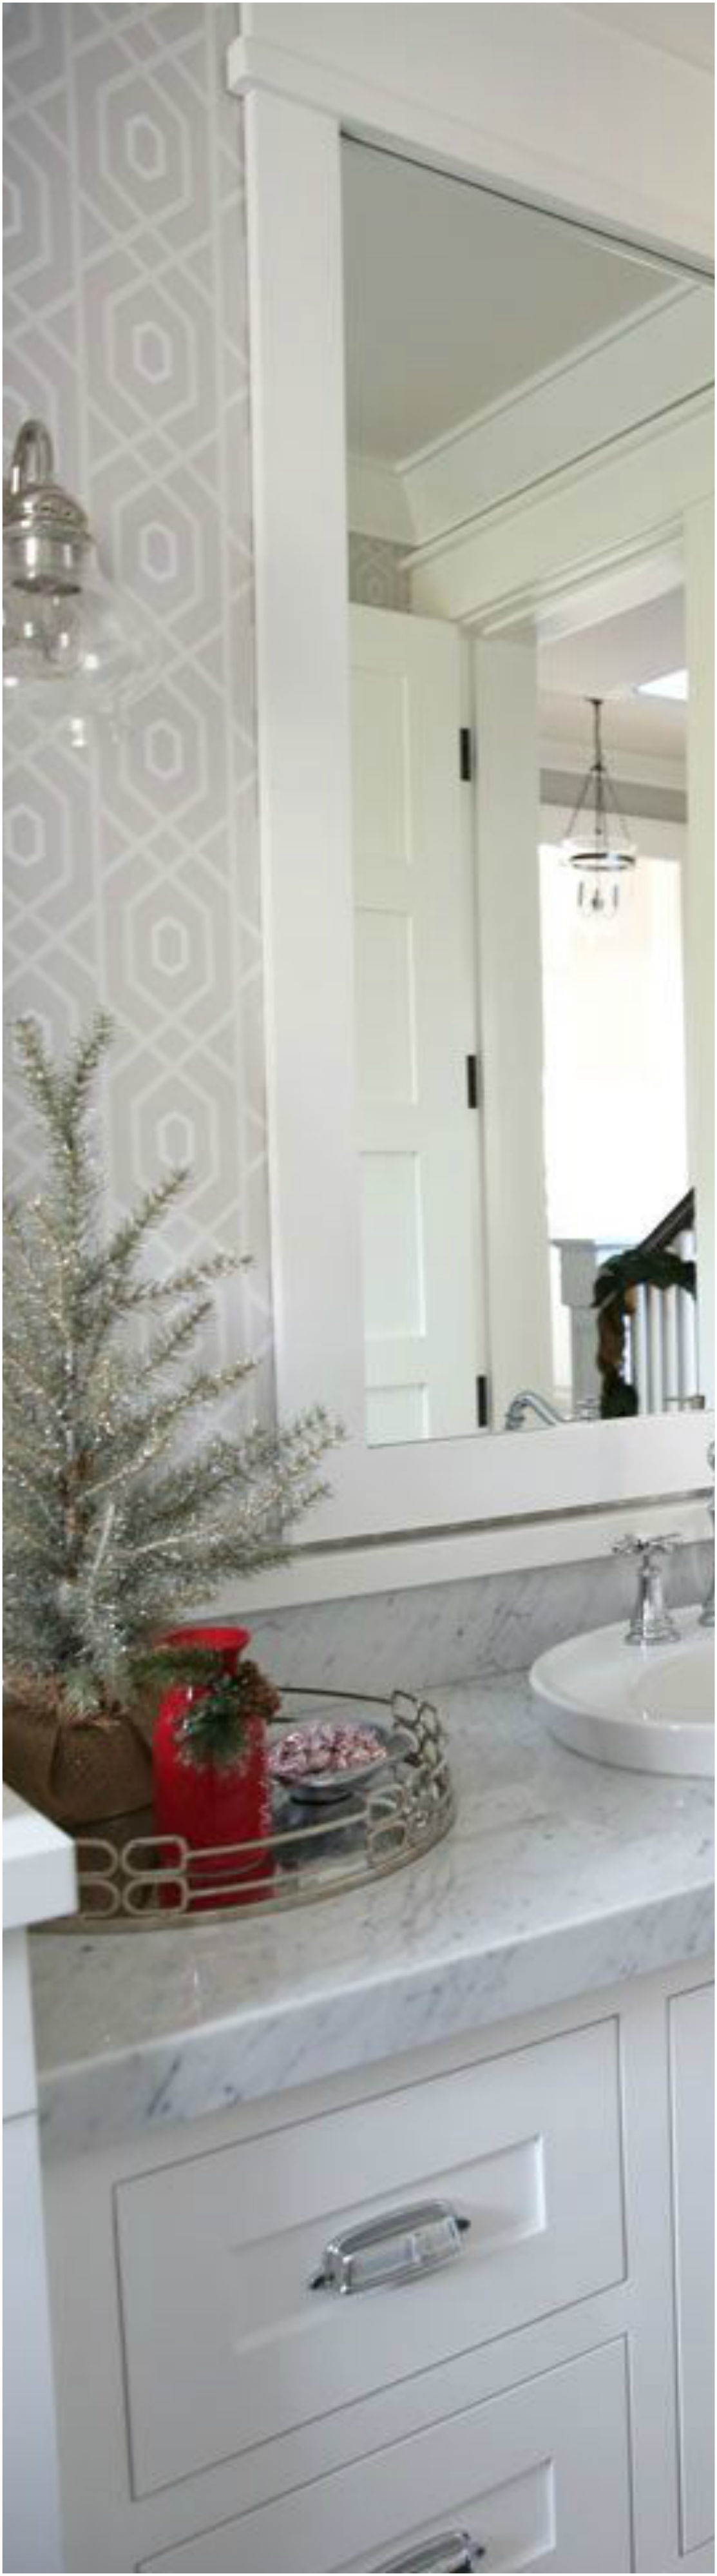 Bathroom Christmas Decoration Ideas (6)